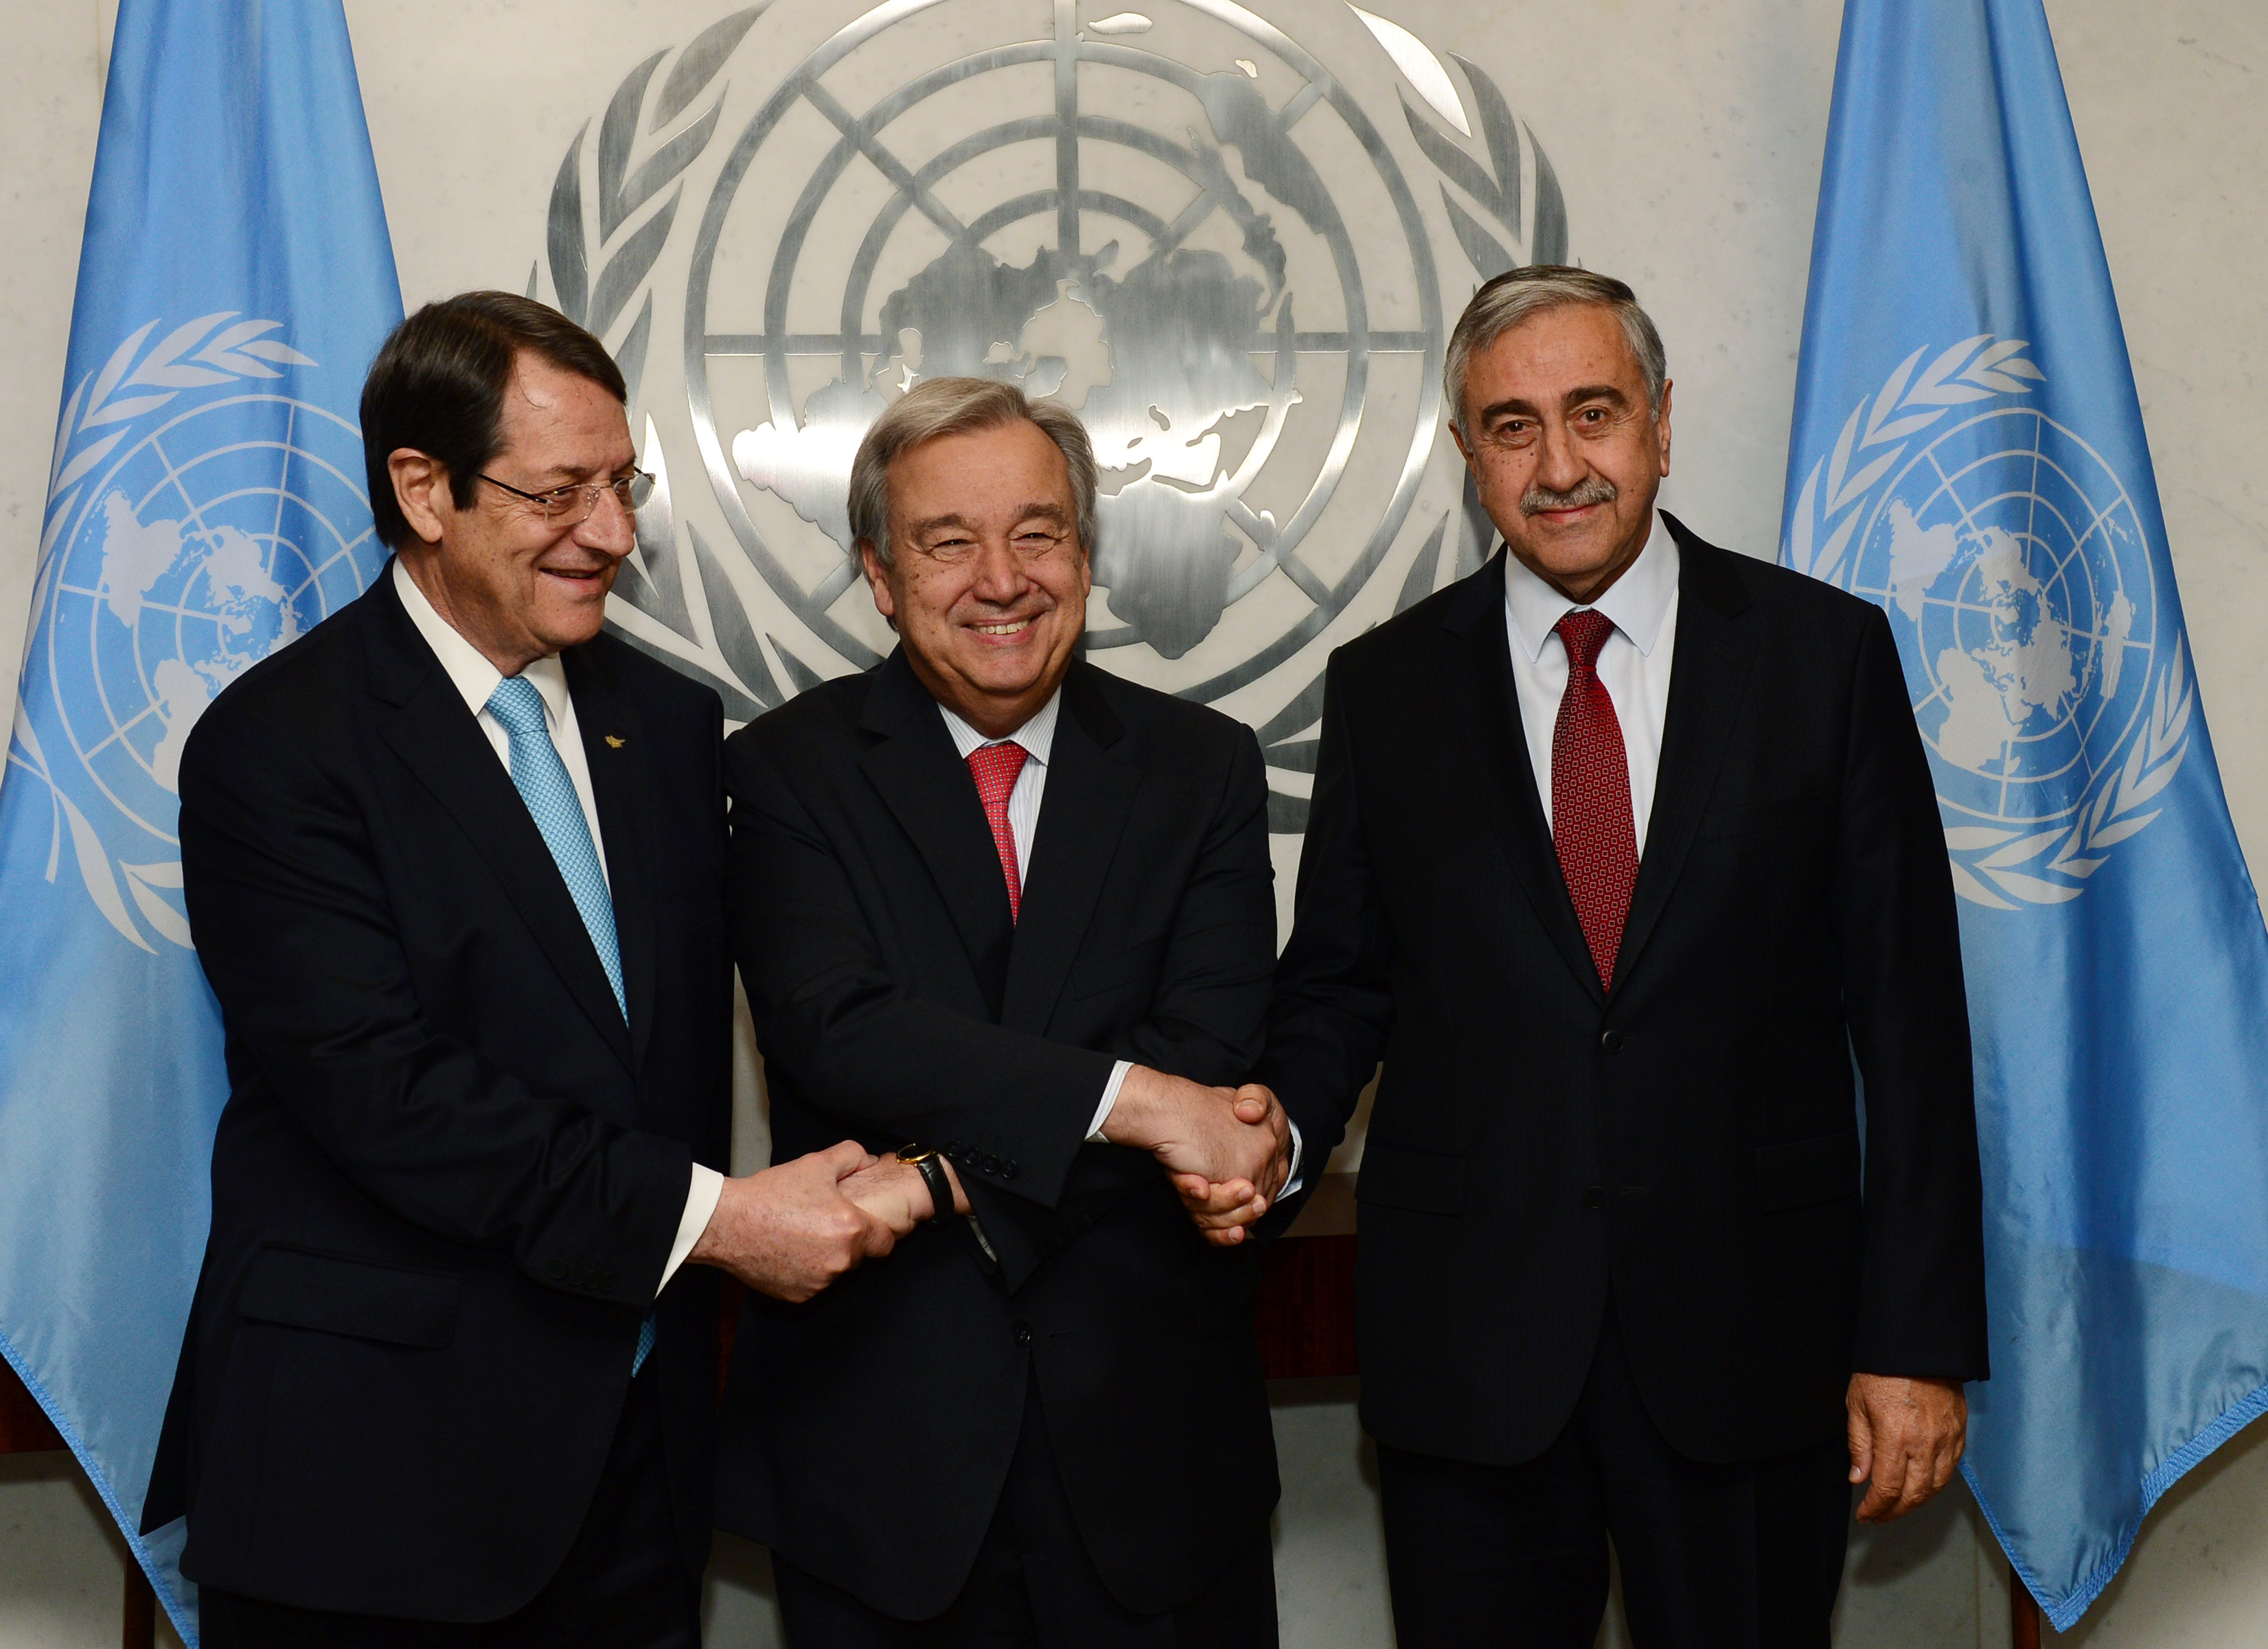 President Anastasiades met with the Secretary-General of the UN and the T/C leader, in New York, Sunday